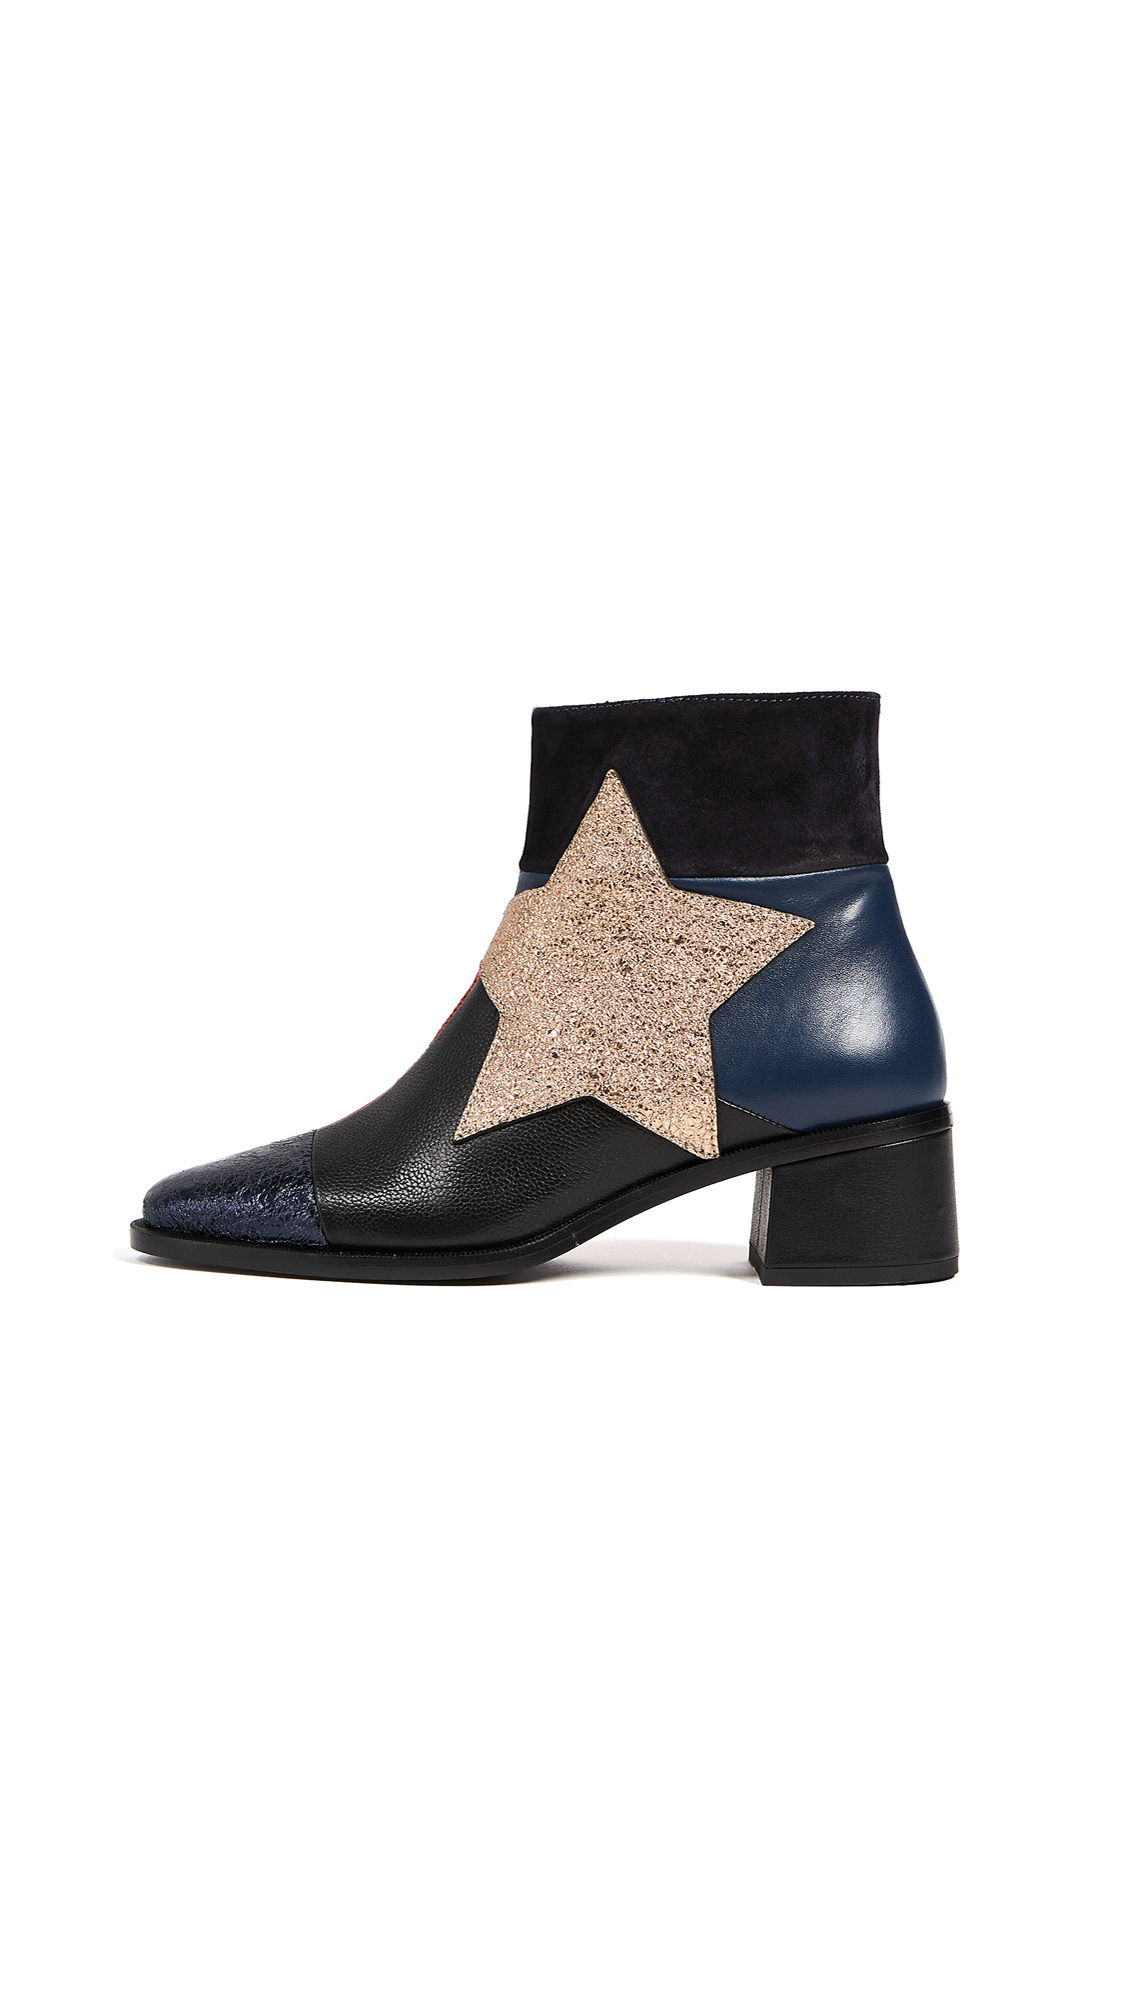 Hilfiger Collection Patchwork Star Ankle Booties - Peacoat/Multi